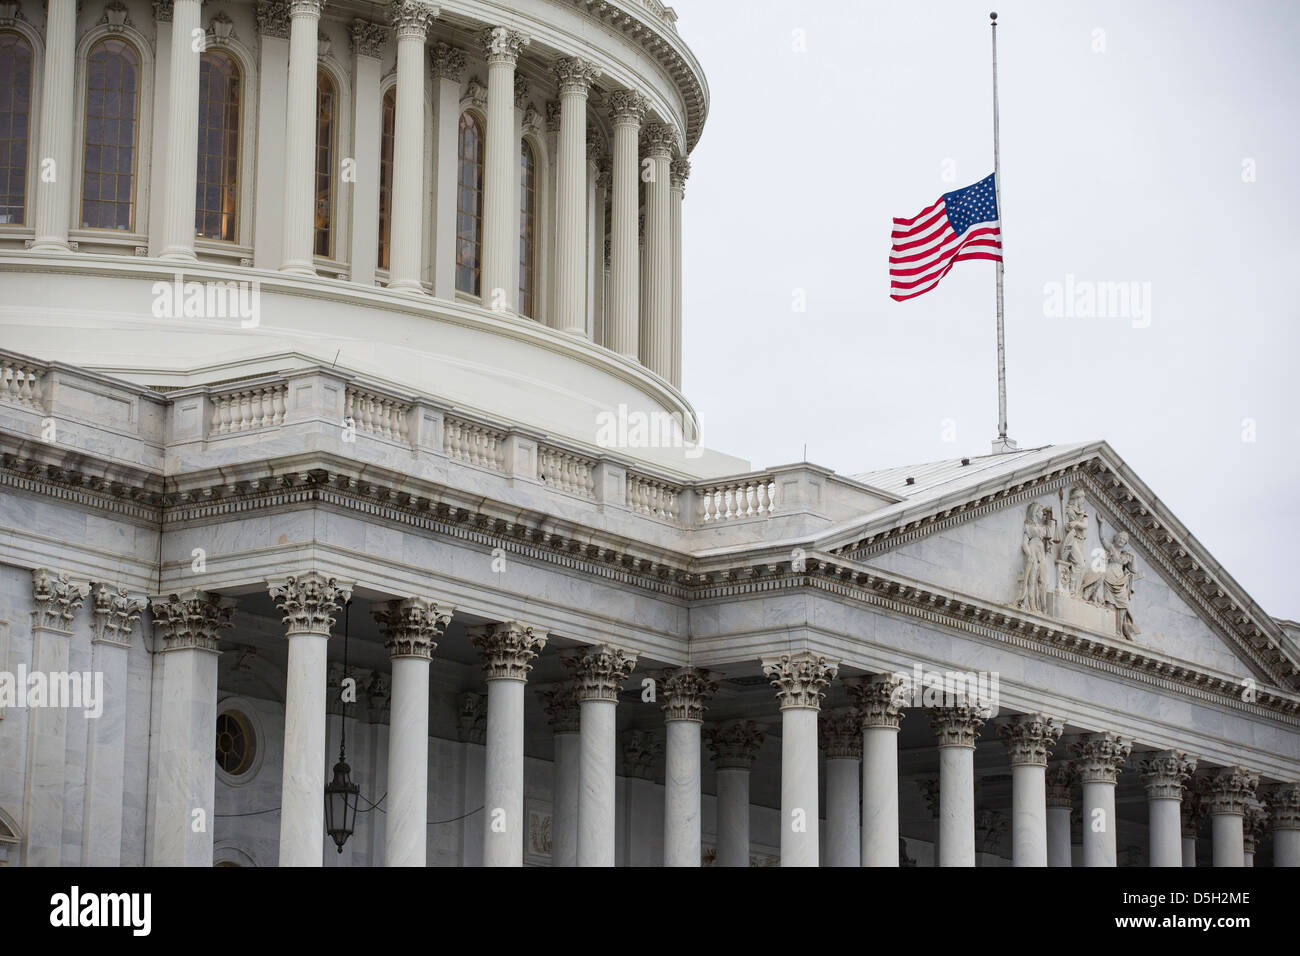 The U.S. Capitol stands in Washington on December 21, 2012. - Stock Image